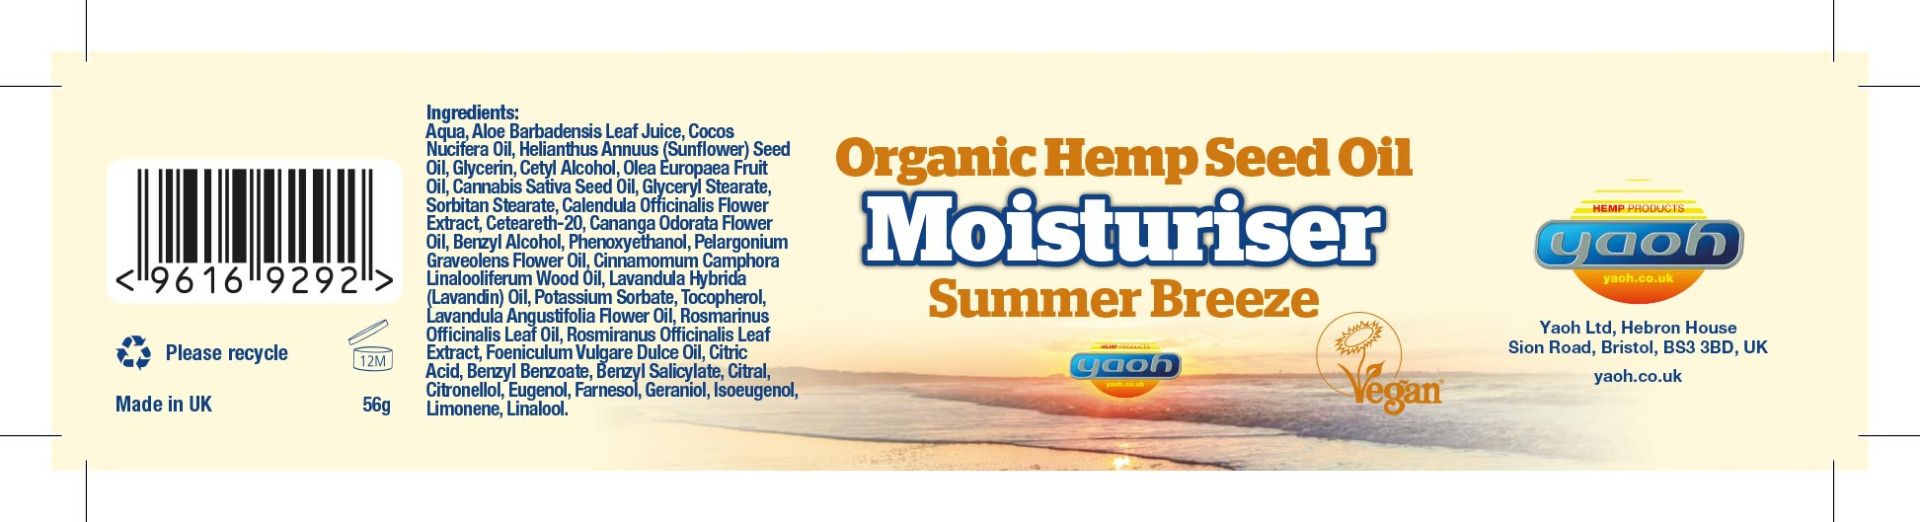 Hemp Seed Oil Moisturiser - Summer Breeze